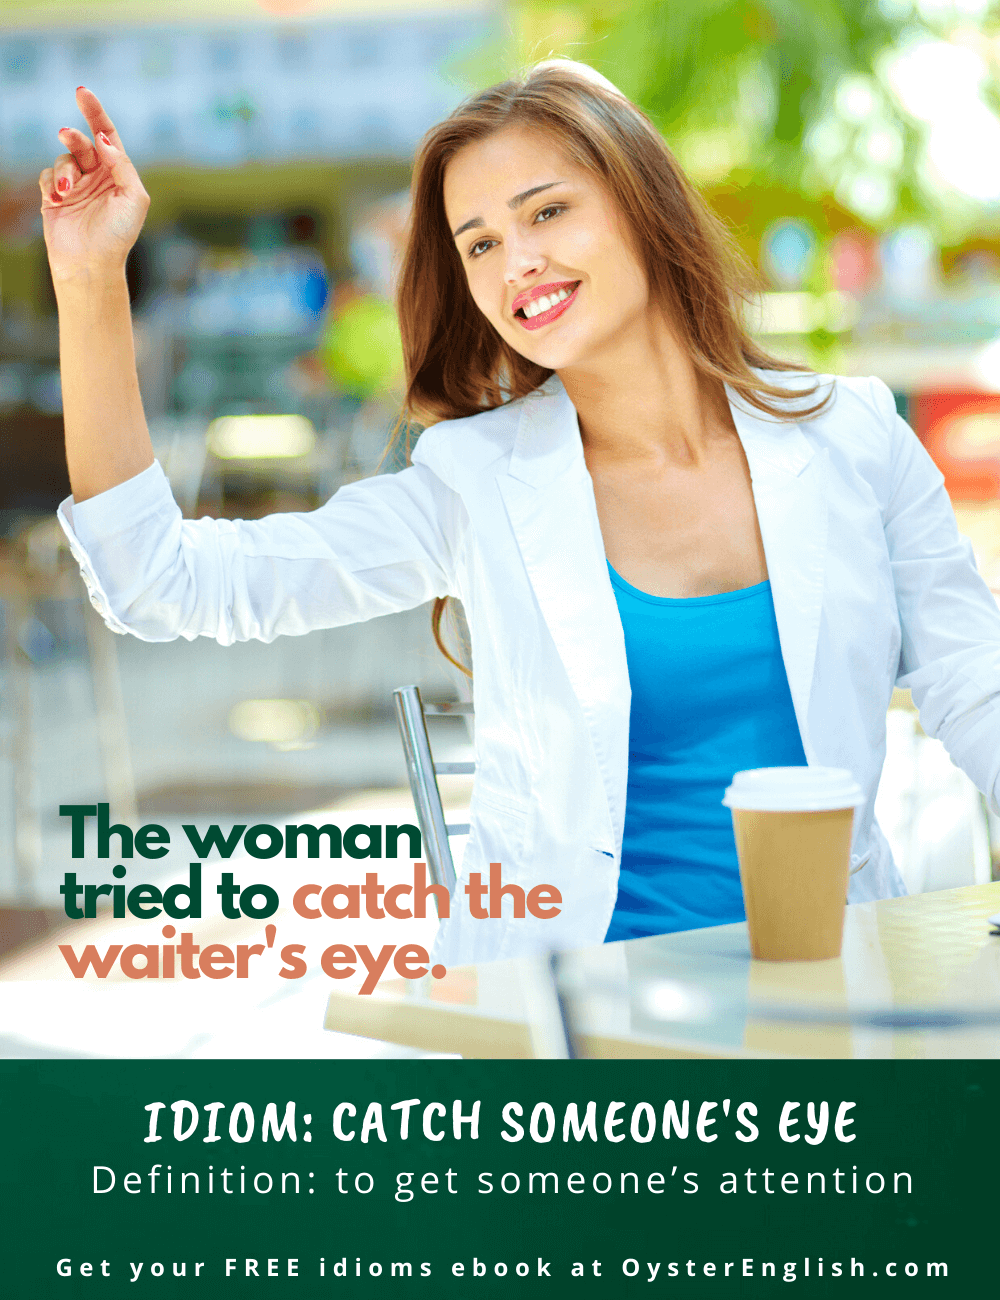 Picture of a woman at an outdoor cafe who is holding up her hand to try to get the waiter's attention. Caption: the woman tried to catch the waiter's eye.